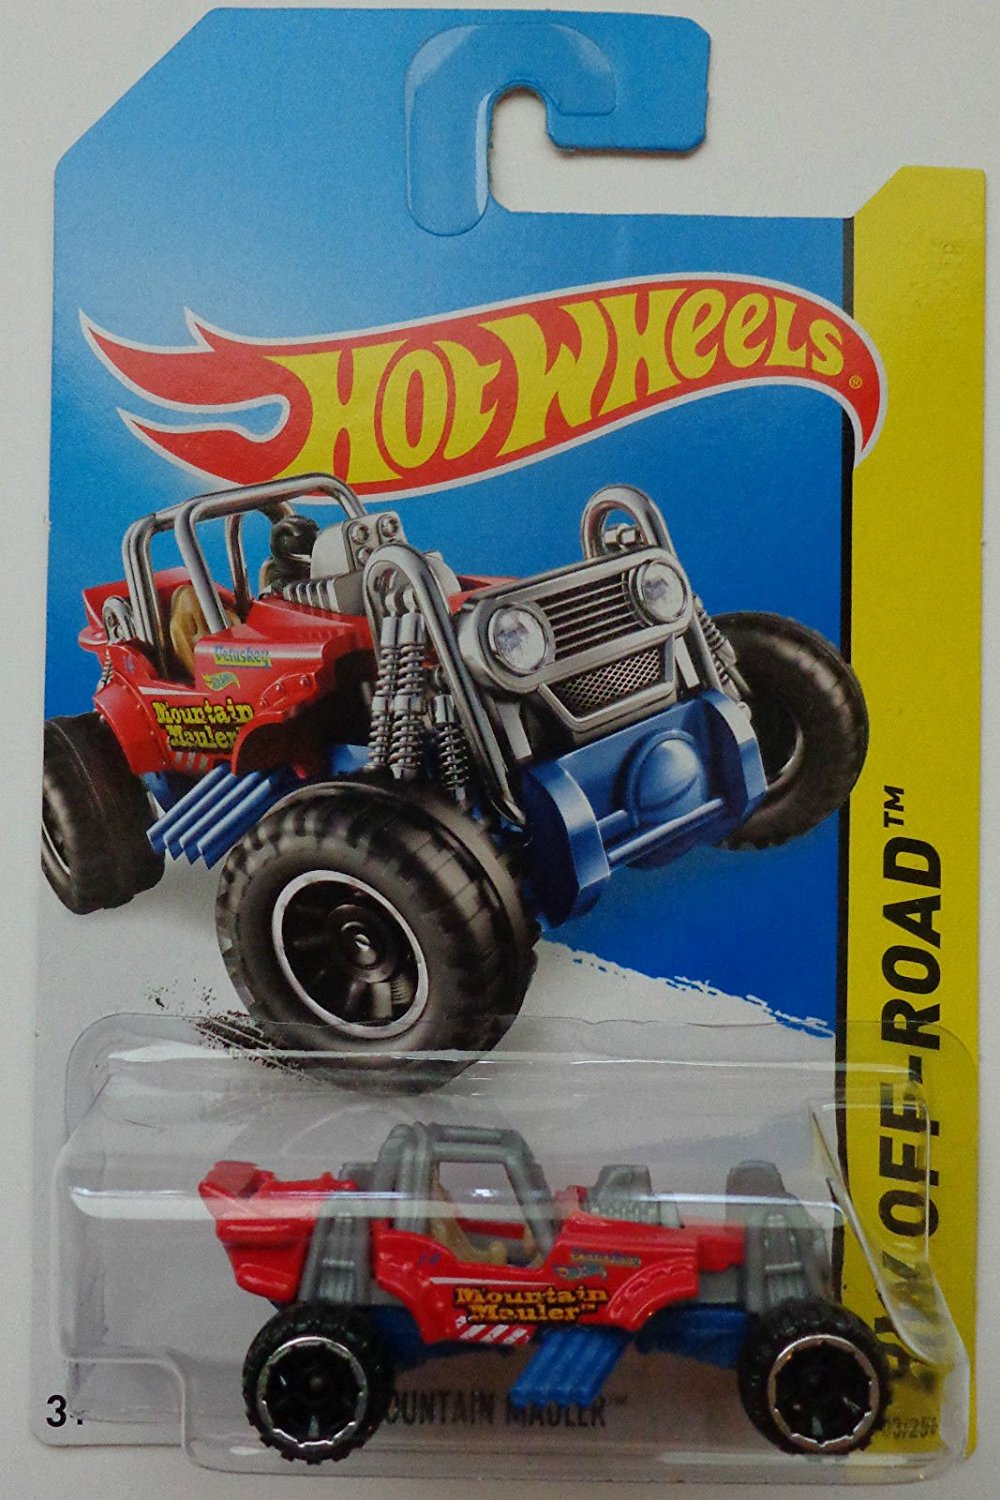 2014 Hot Wheels Hw Off-Road Mountain Mauler Red [Ships in a Box!], HOT WHEELS By Mattel by